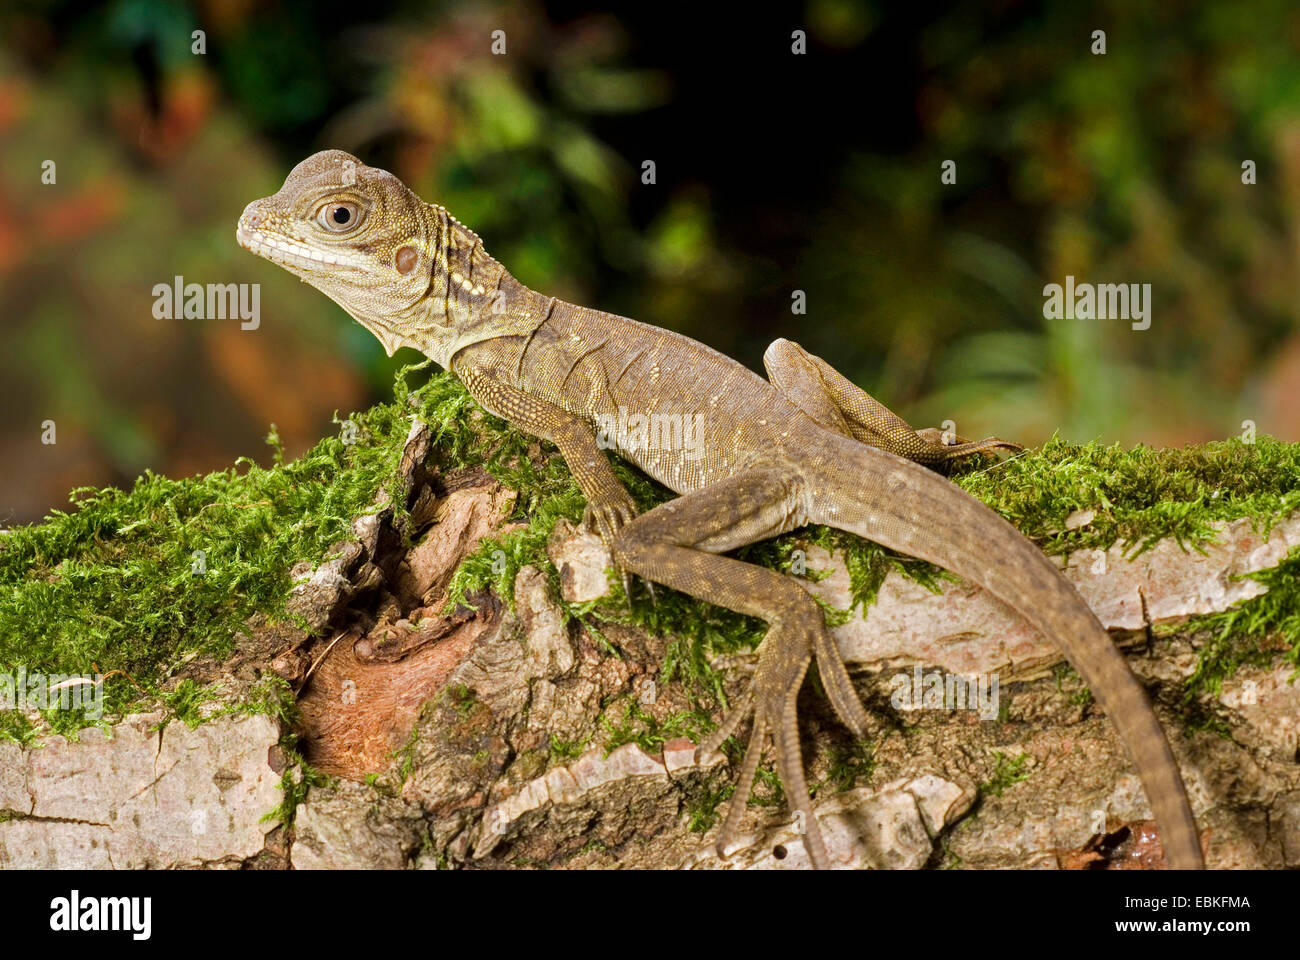 Weber's sail-fin lizard, Webers sail-fin dragon, green sail-fin dragon, soa soa (Hydrosaurus weberi), on mossy branch Stock Photo